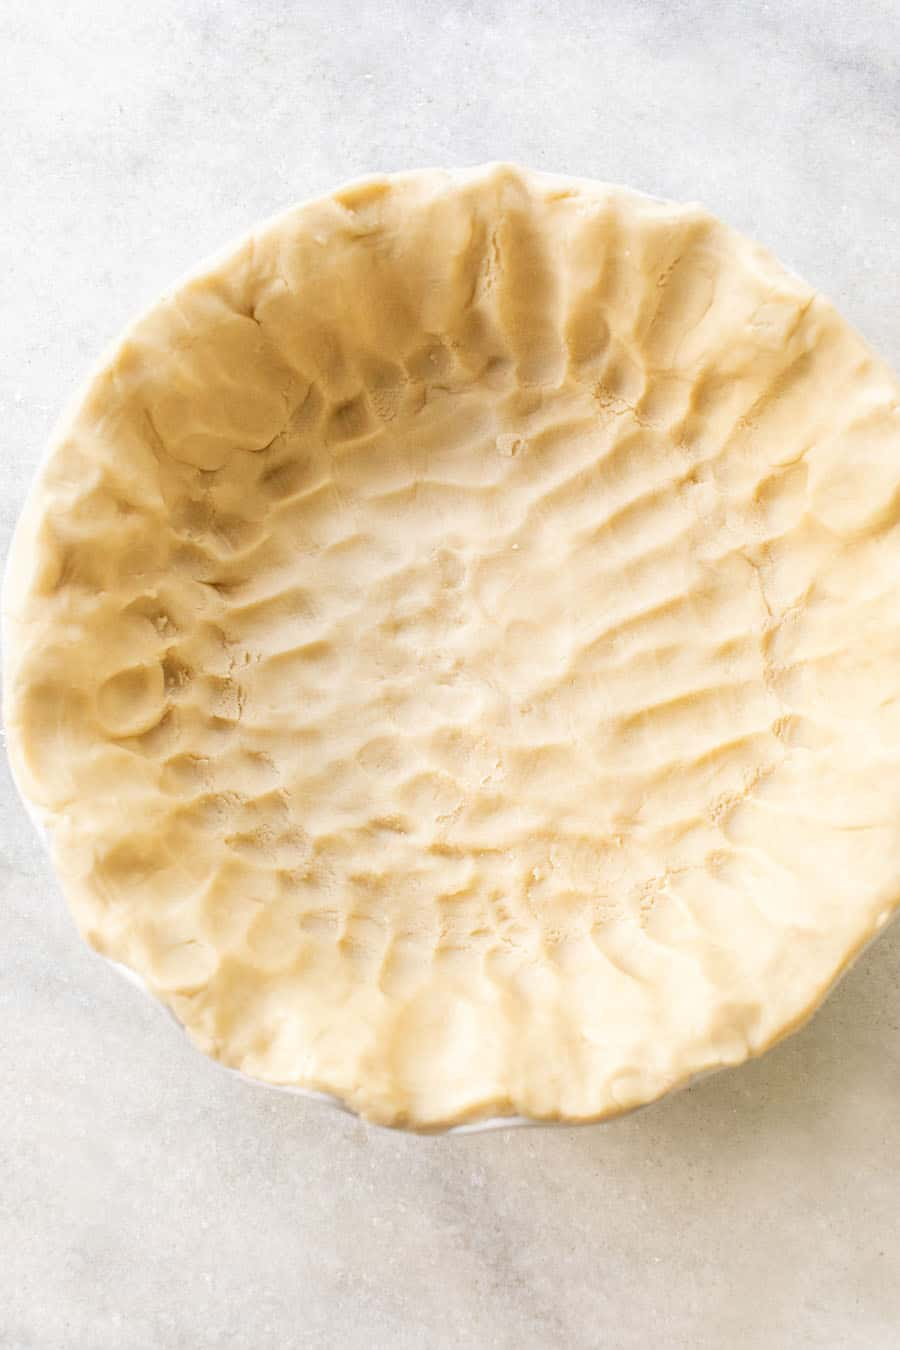 Shortbread cookie crust before it's baked.